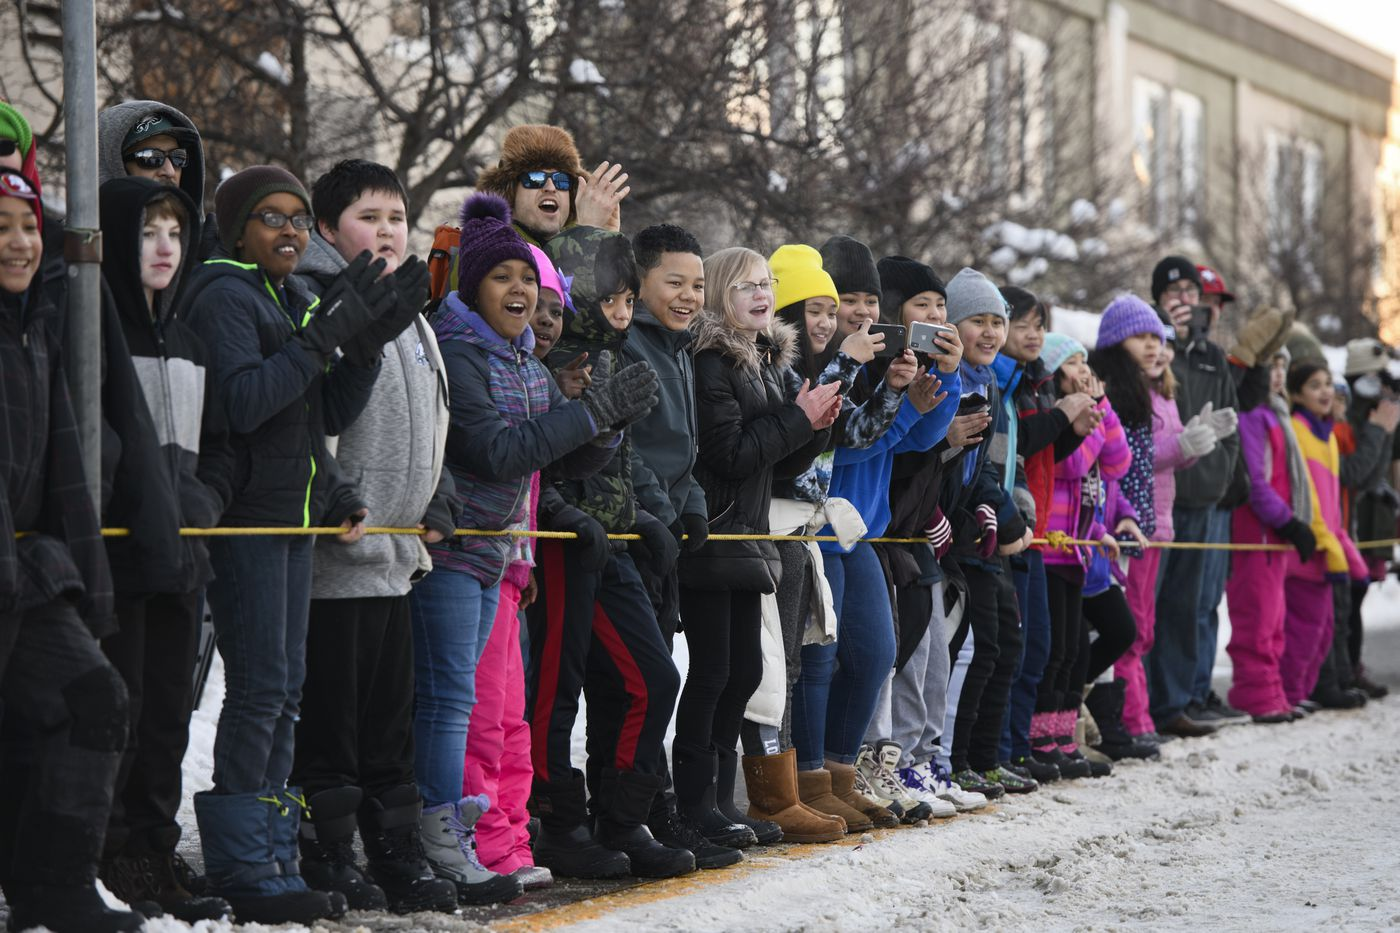 Students from Chester Valley Elementary School cheer the mushers. (Marc Lester / ADN)